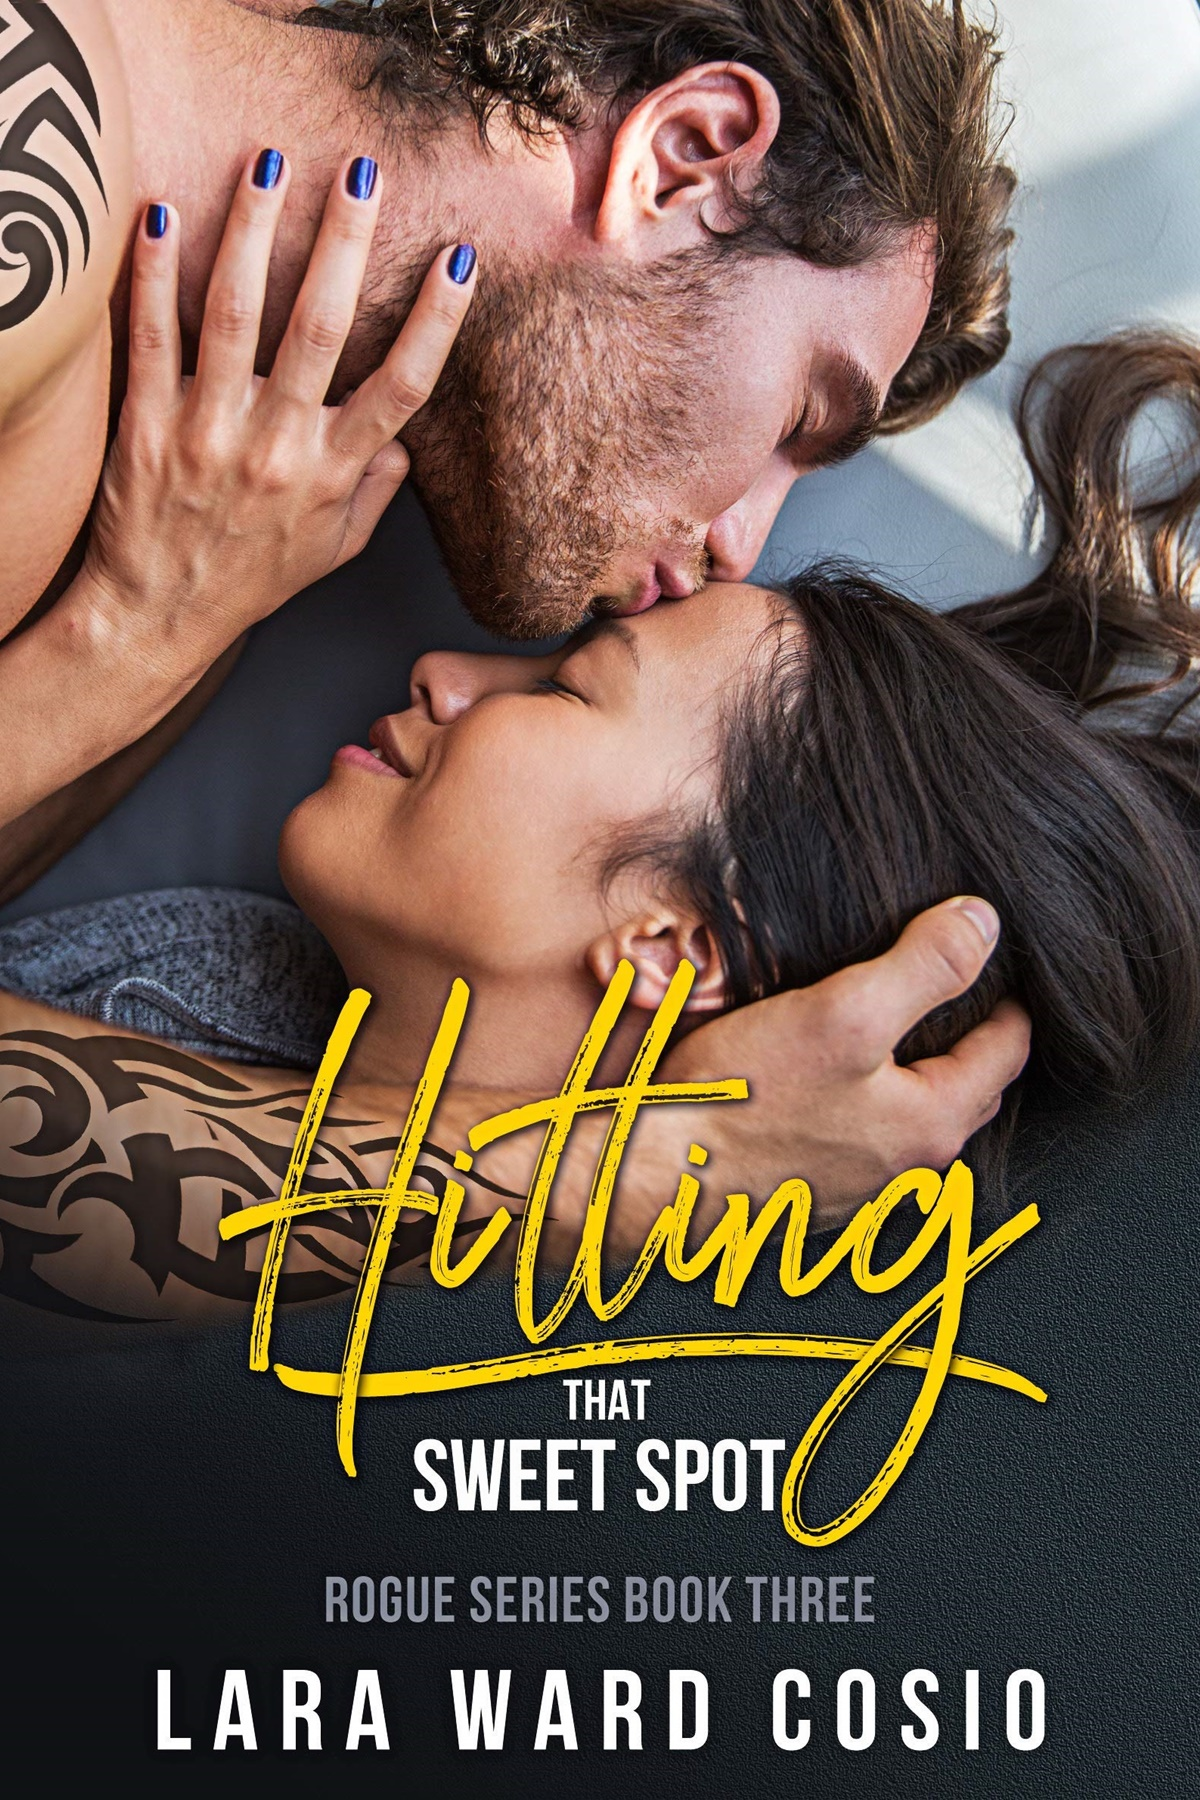 Rocker Romance Novel, cover of Hitting That Sweet Spot by Lara Ward Cosio, books